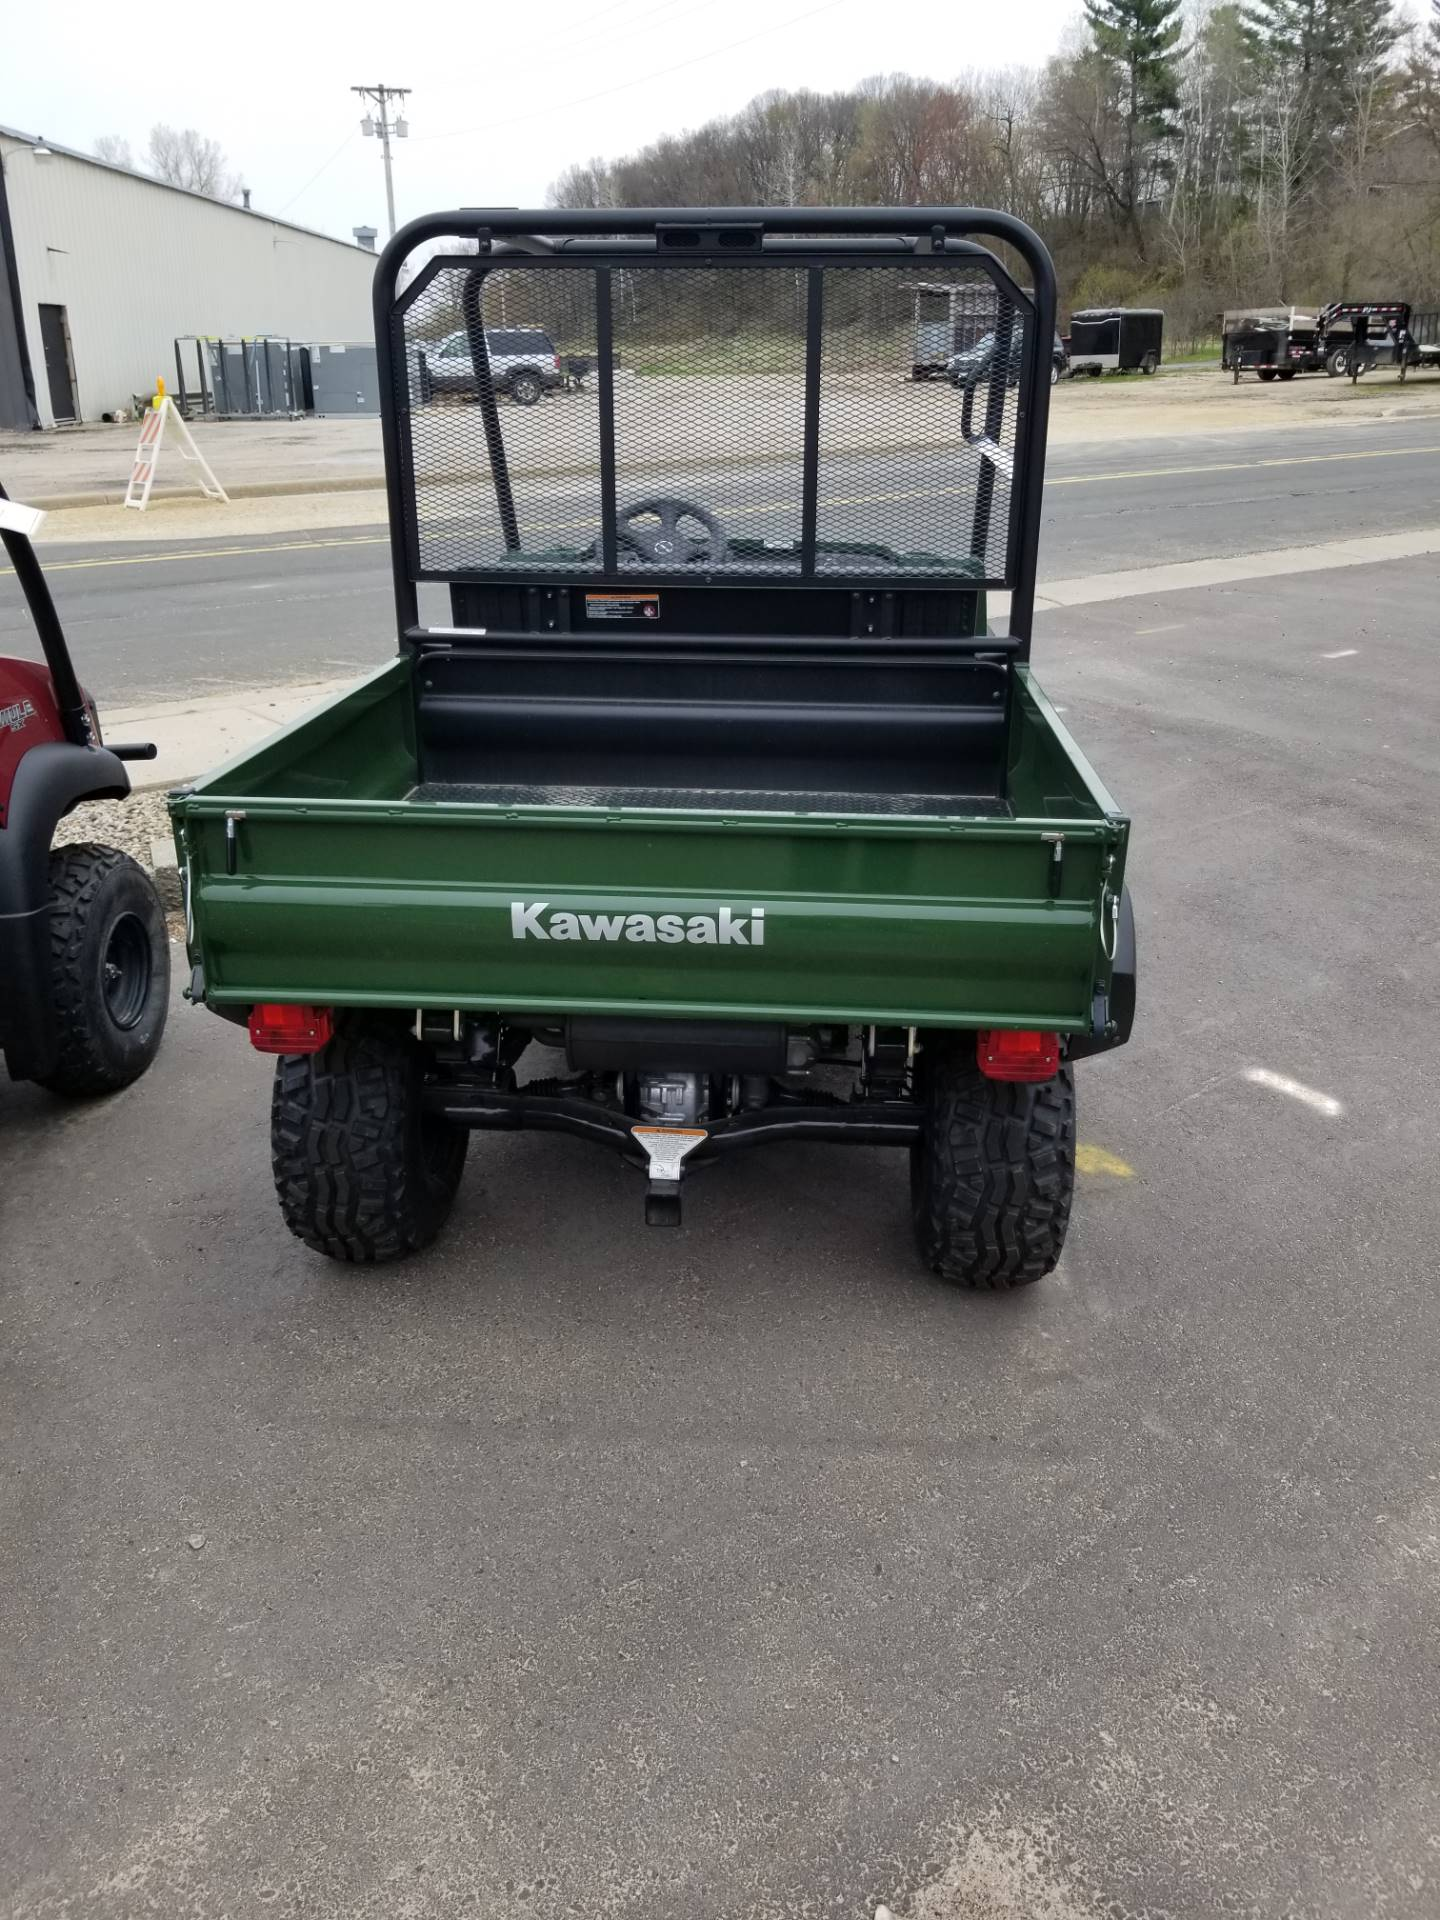 2019 Kawasaki Mule 4010 4x4 in Hillsboro, Wisconsin - Photo 3